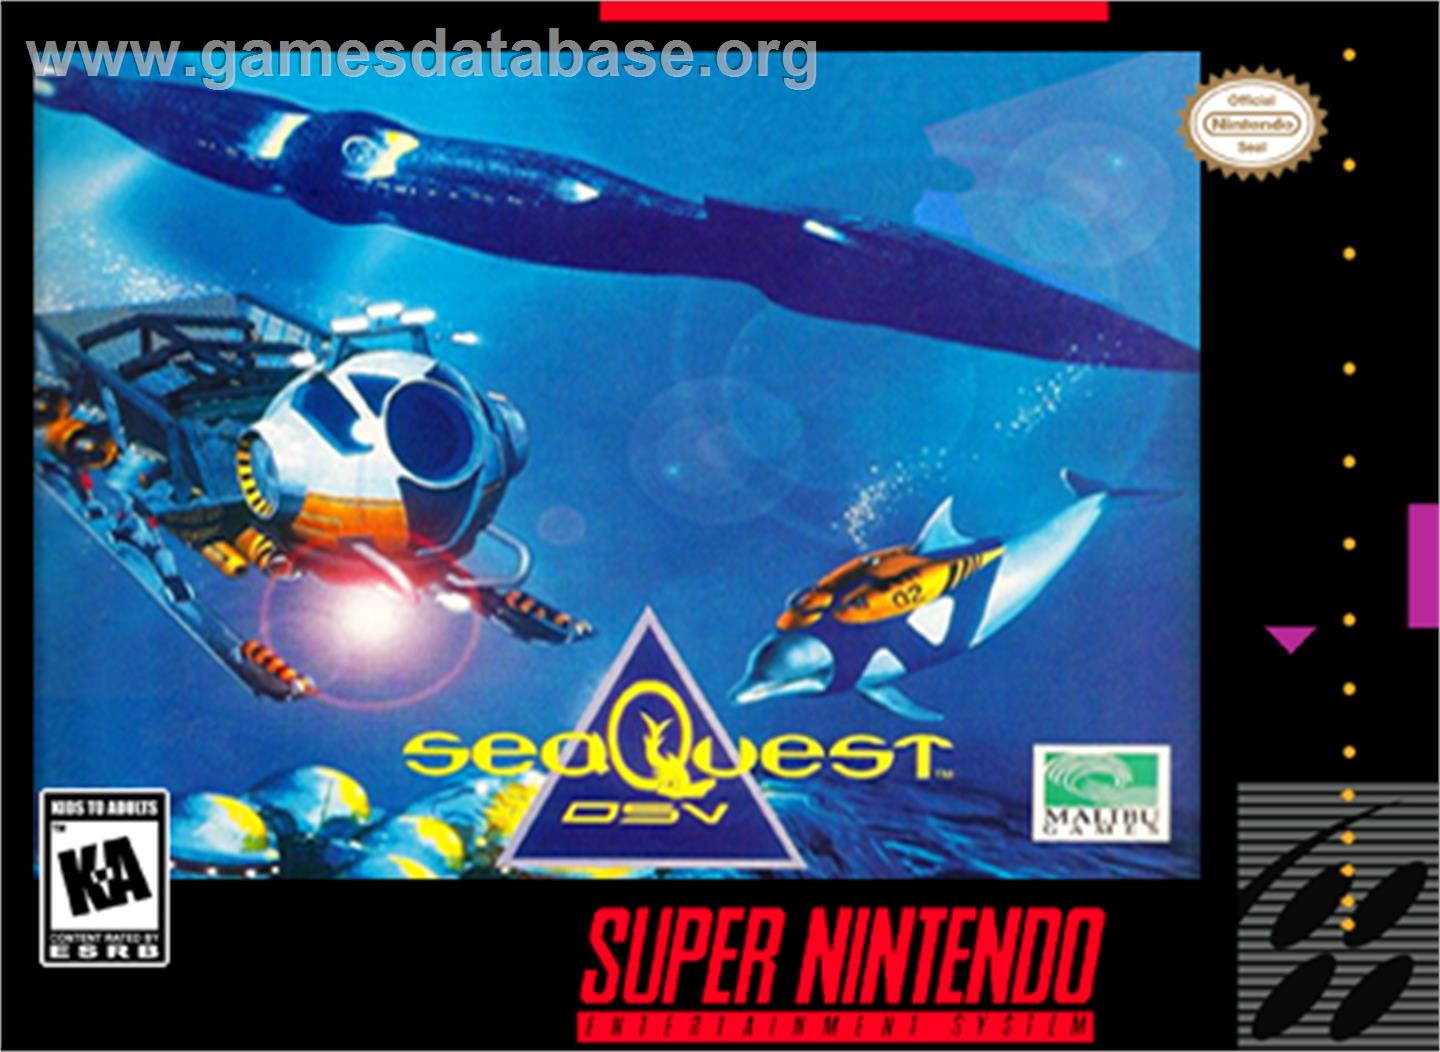 SeaQuest DSV - Nintendo SNES - Artwork - Box